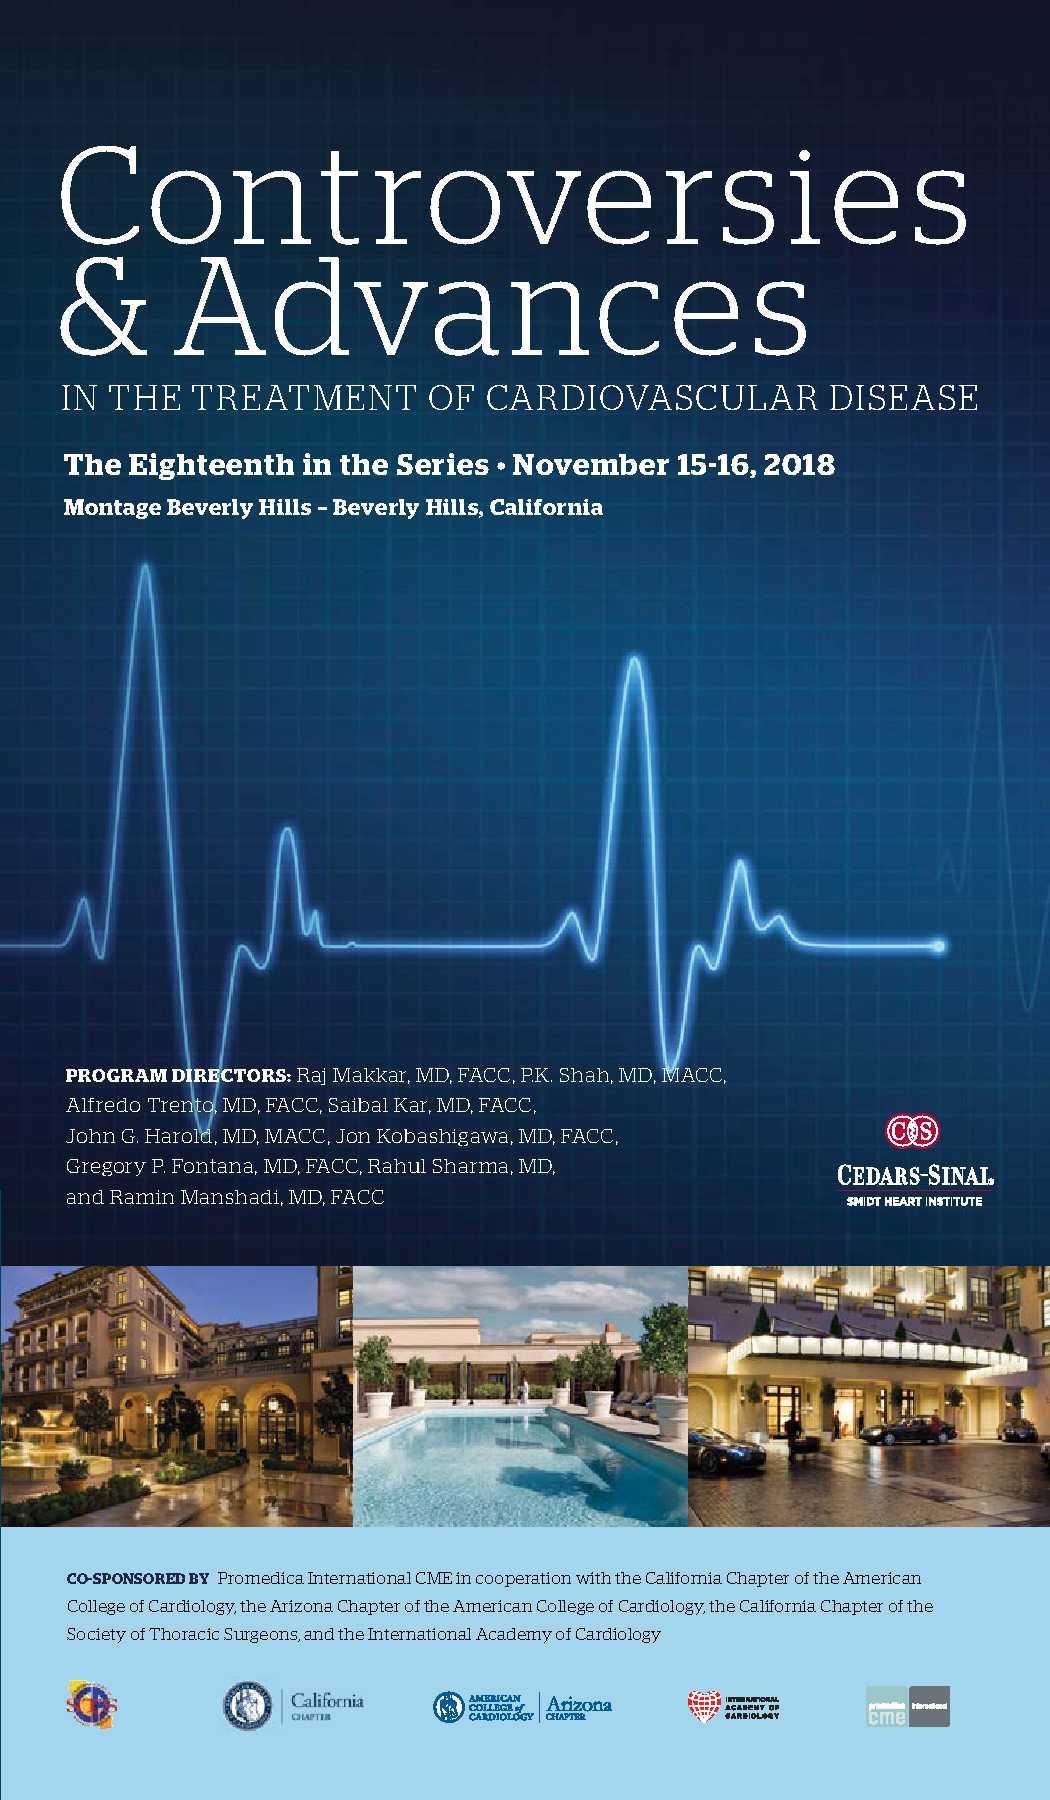 Controversies & Advances In The Treatment of Cardiovascular